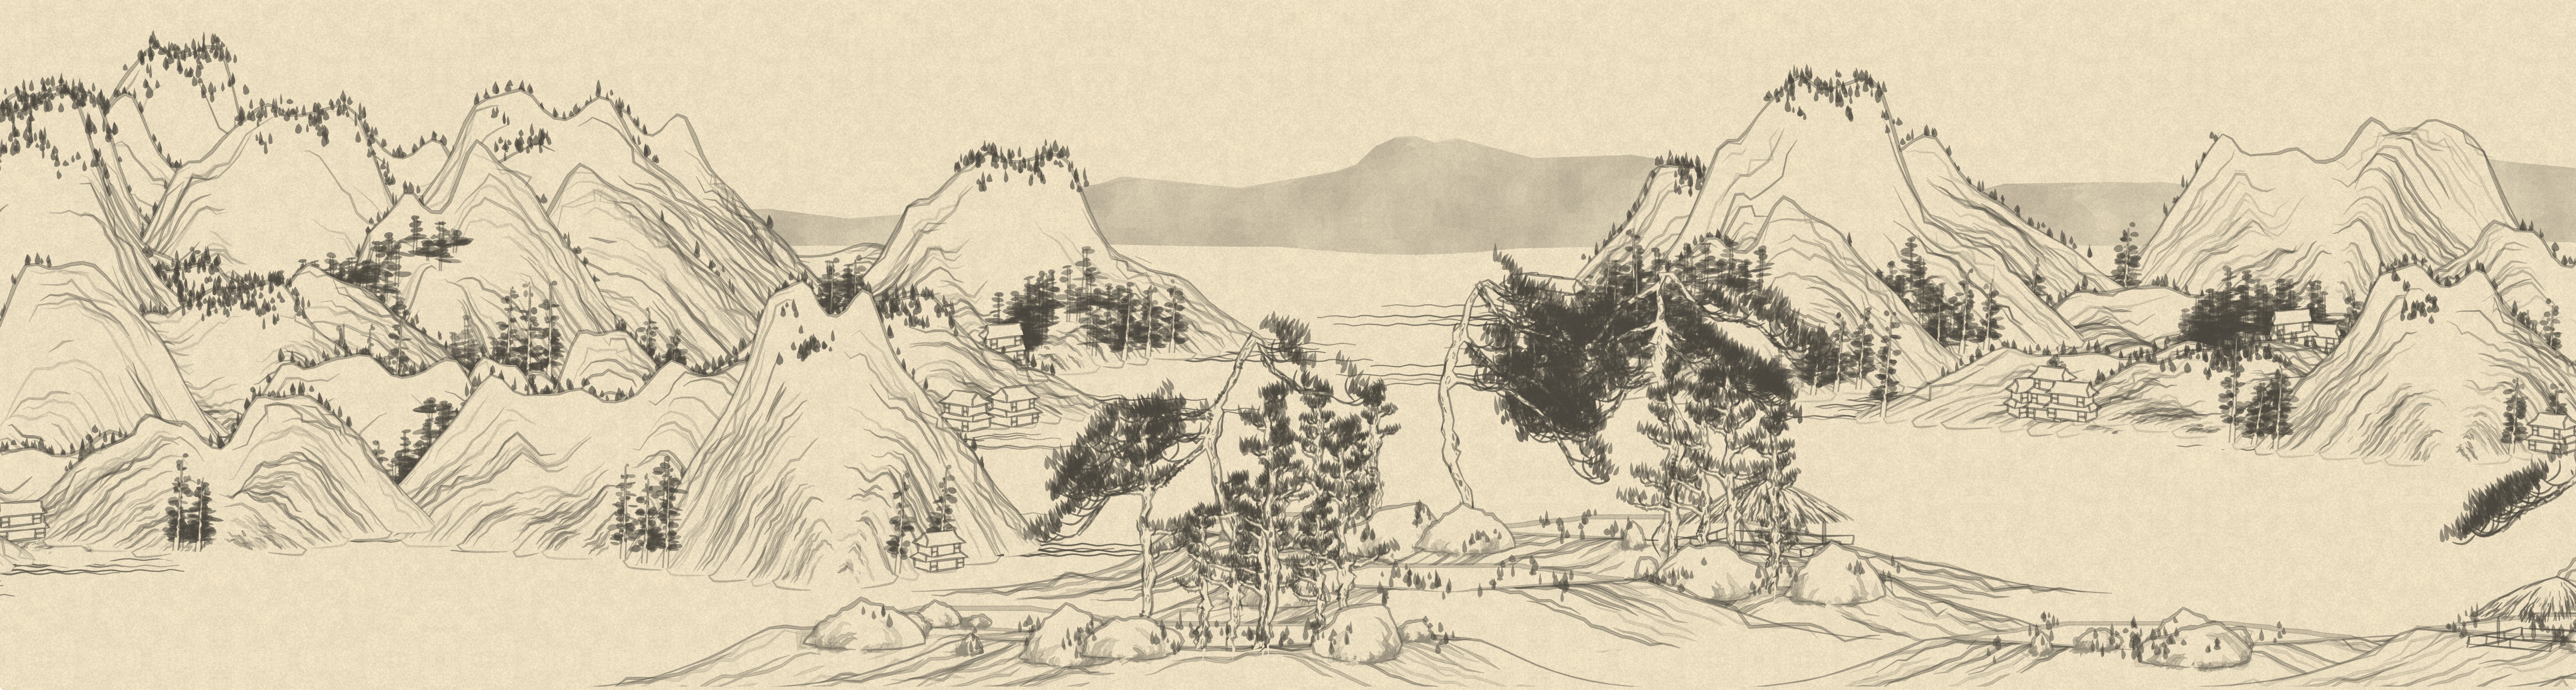 Procedurally generated Chinese landscape painting